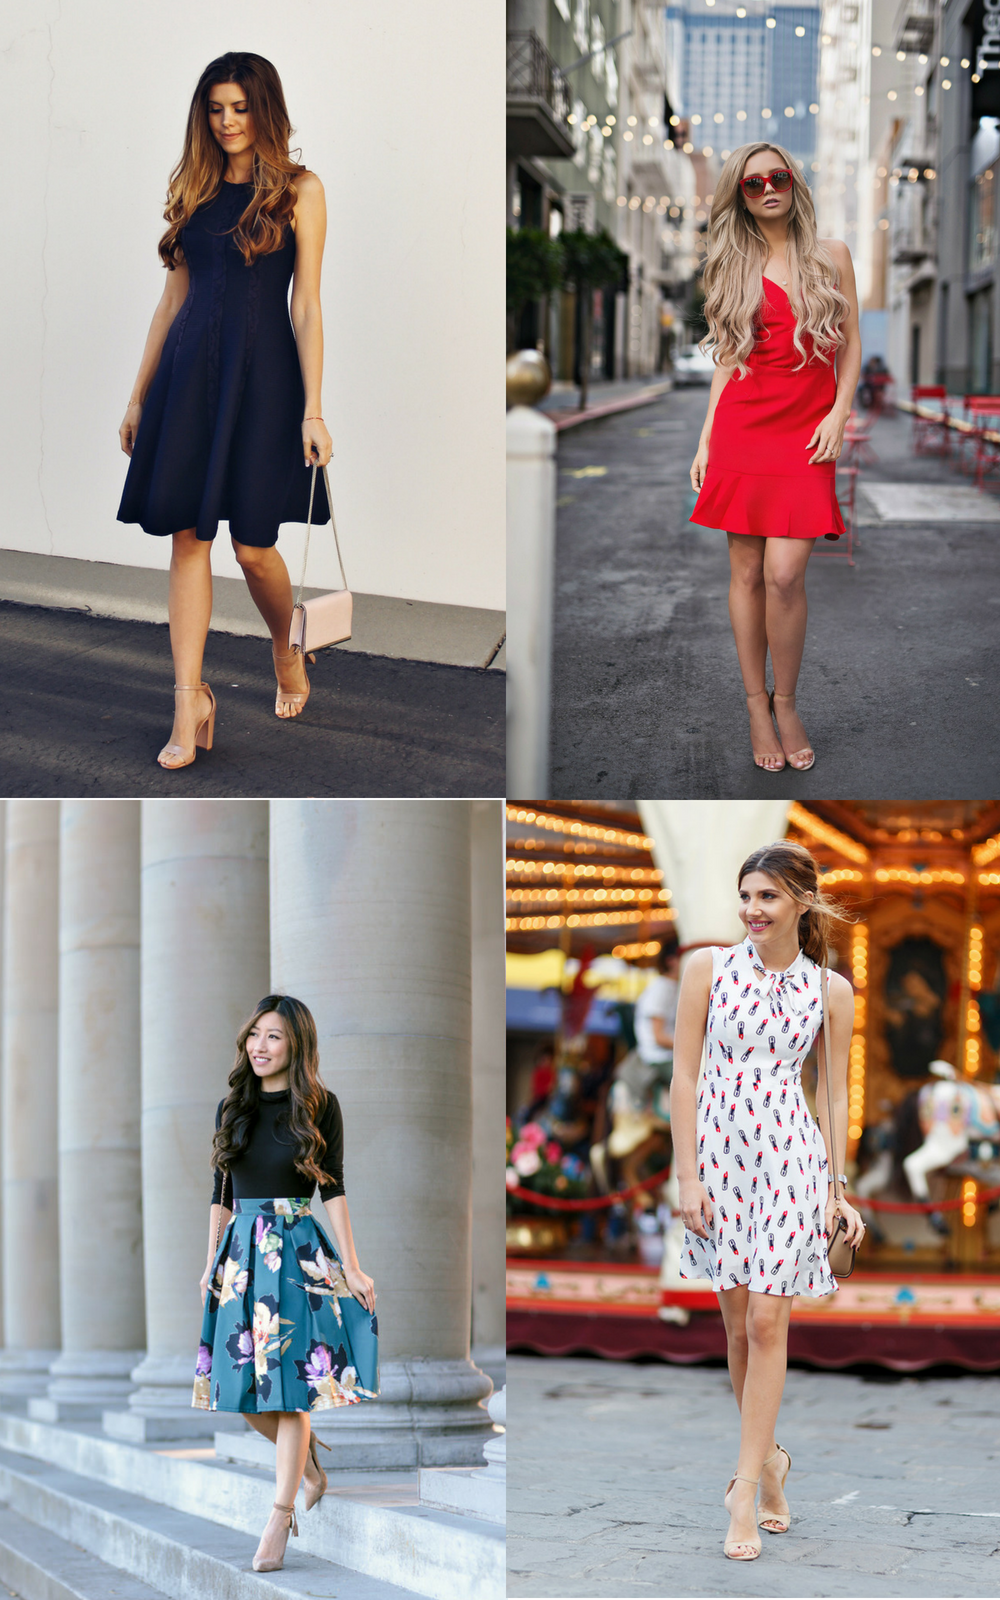 29 Smart Brunch Outfit Ideas For Women You Ll Want To Try Juelzjohn